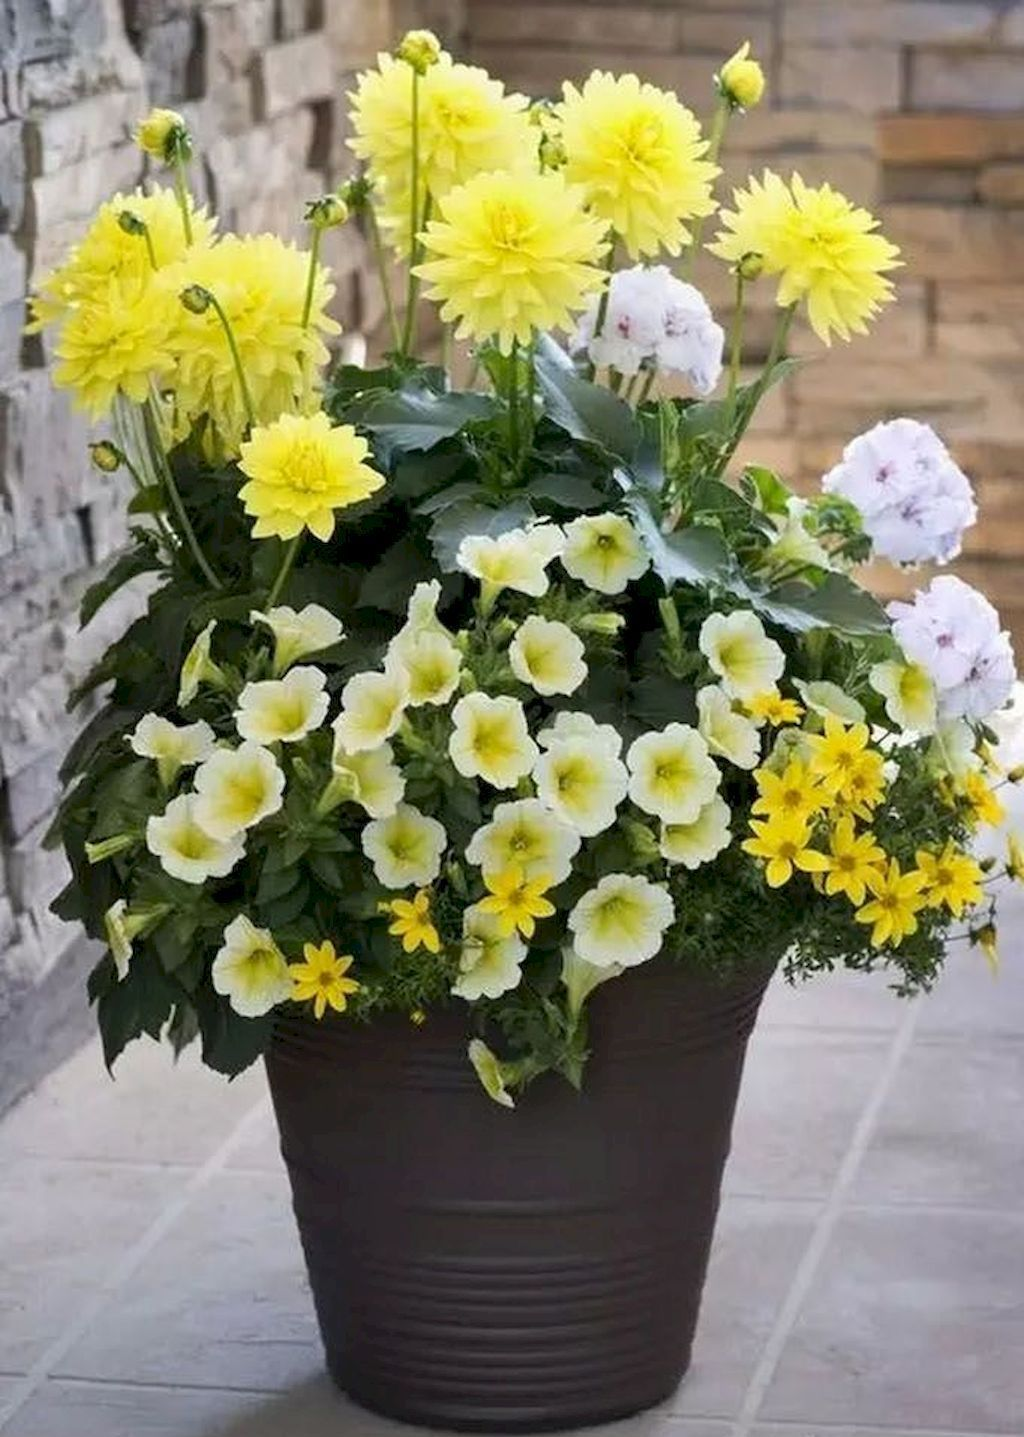 Adorable 50 Beautiful Container Garden Flowers Ideas Https Architeworks Com 50 Beautiful Co Container Gardening Flowers Garden Containers Container Gardening